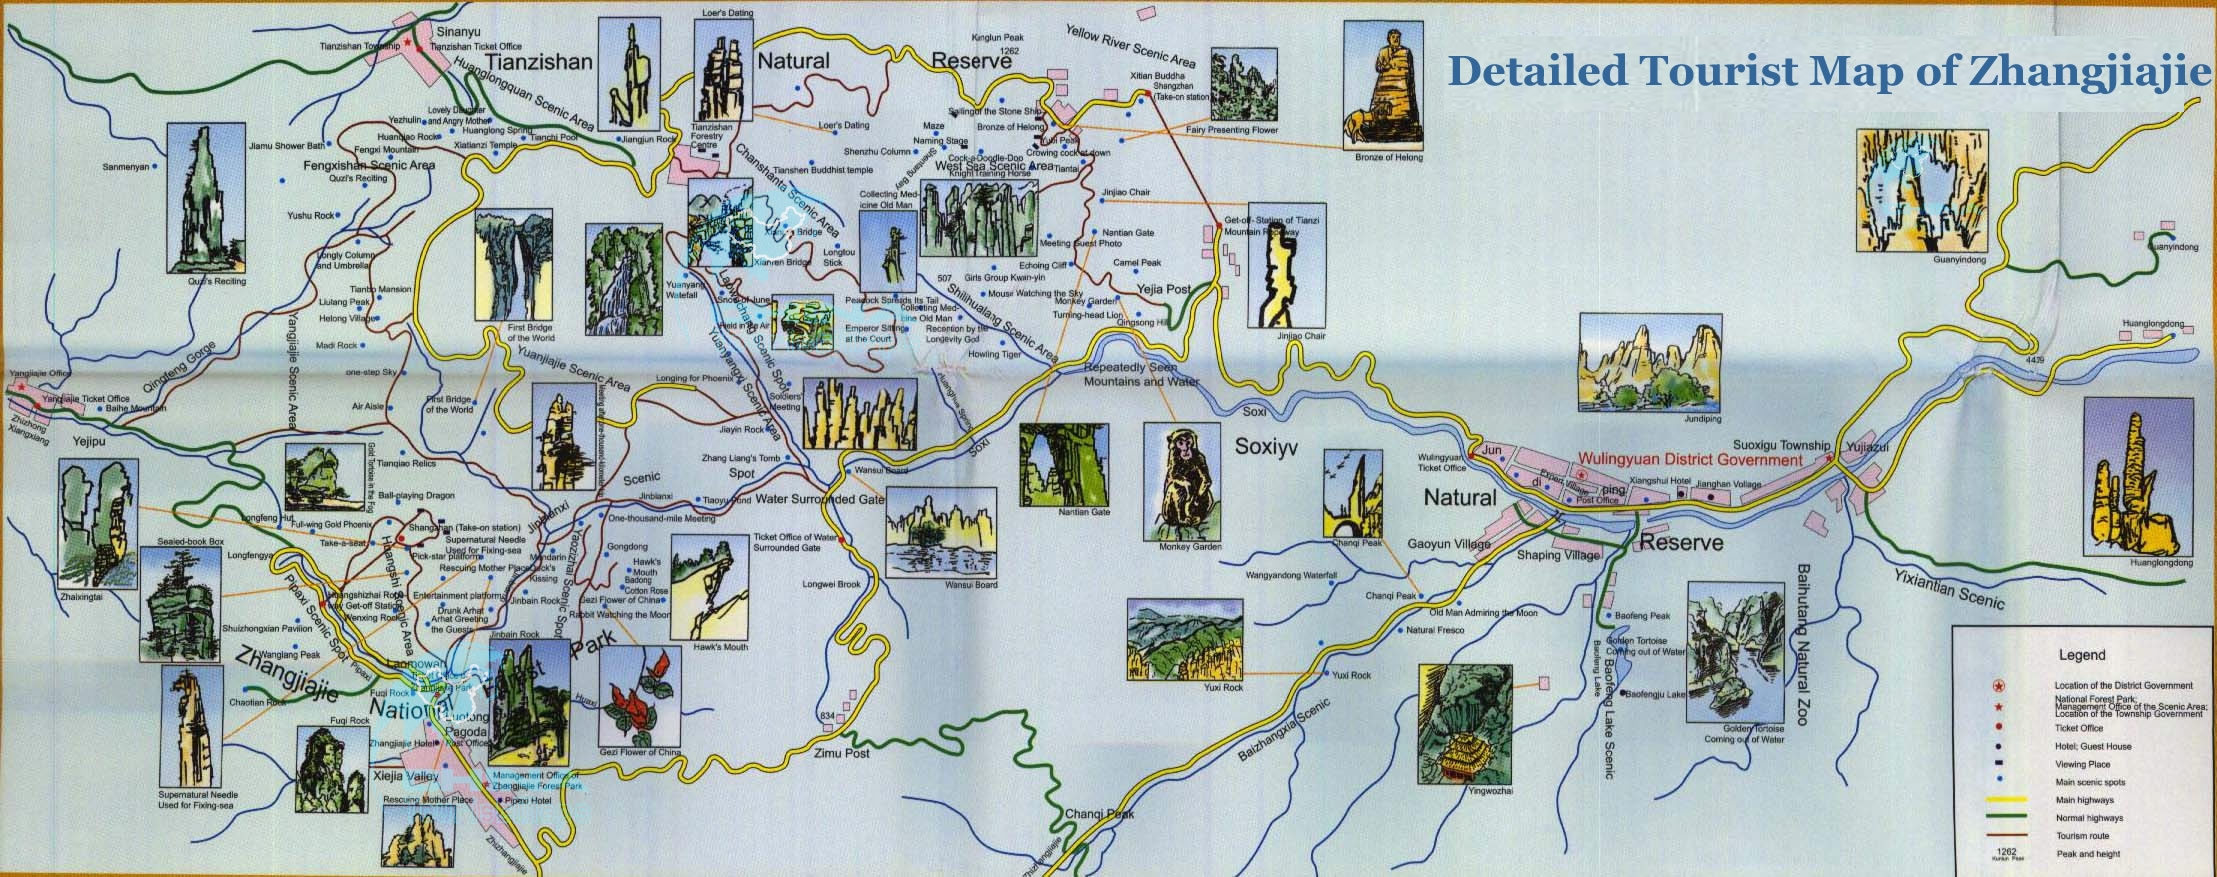 Zhangjiajie Detailed Tourist Map with Illustrations